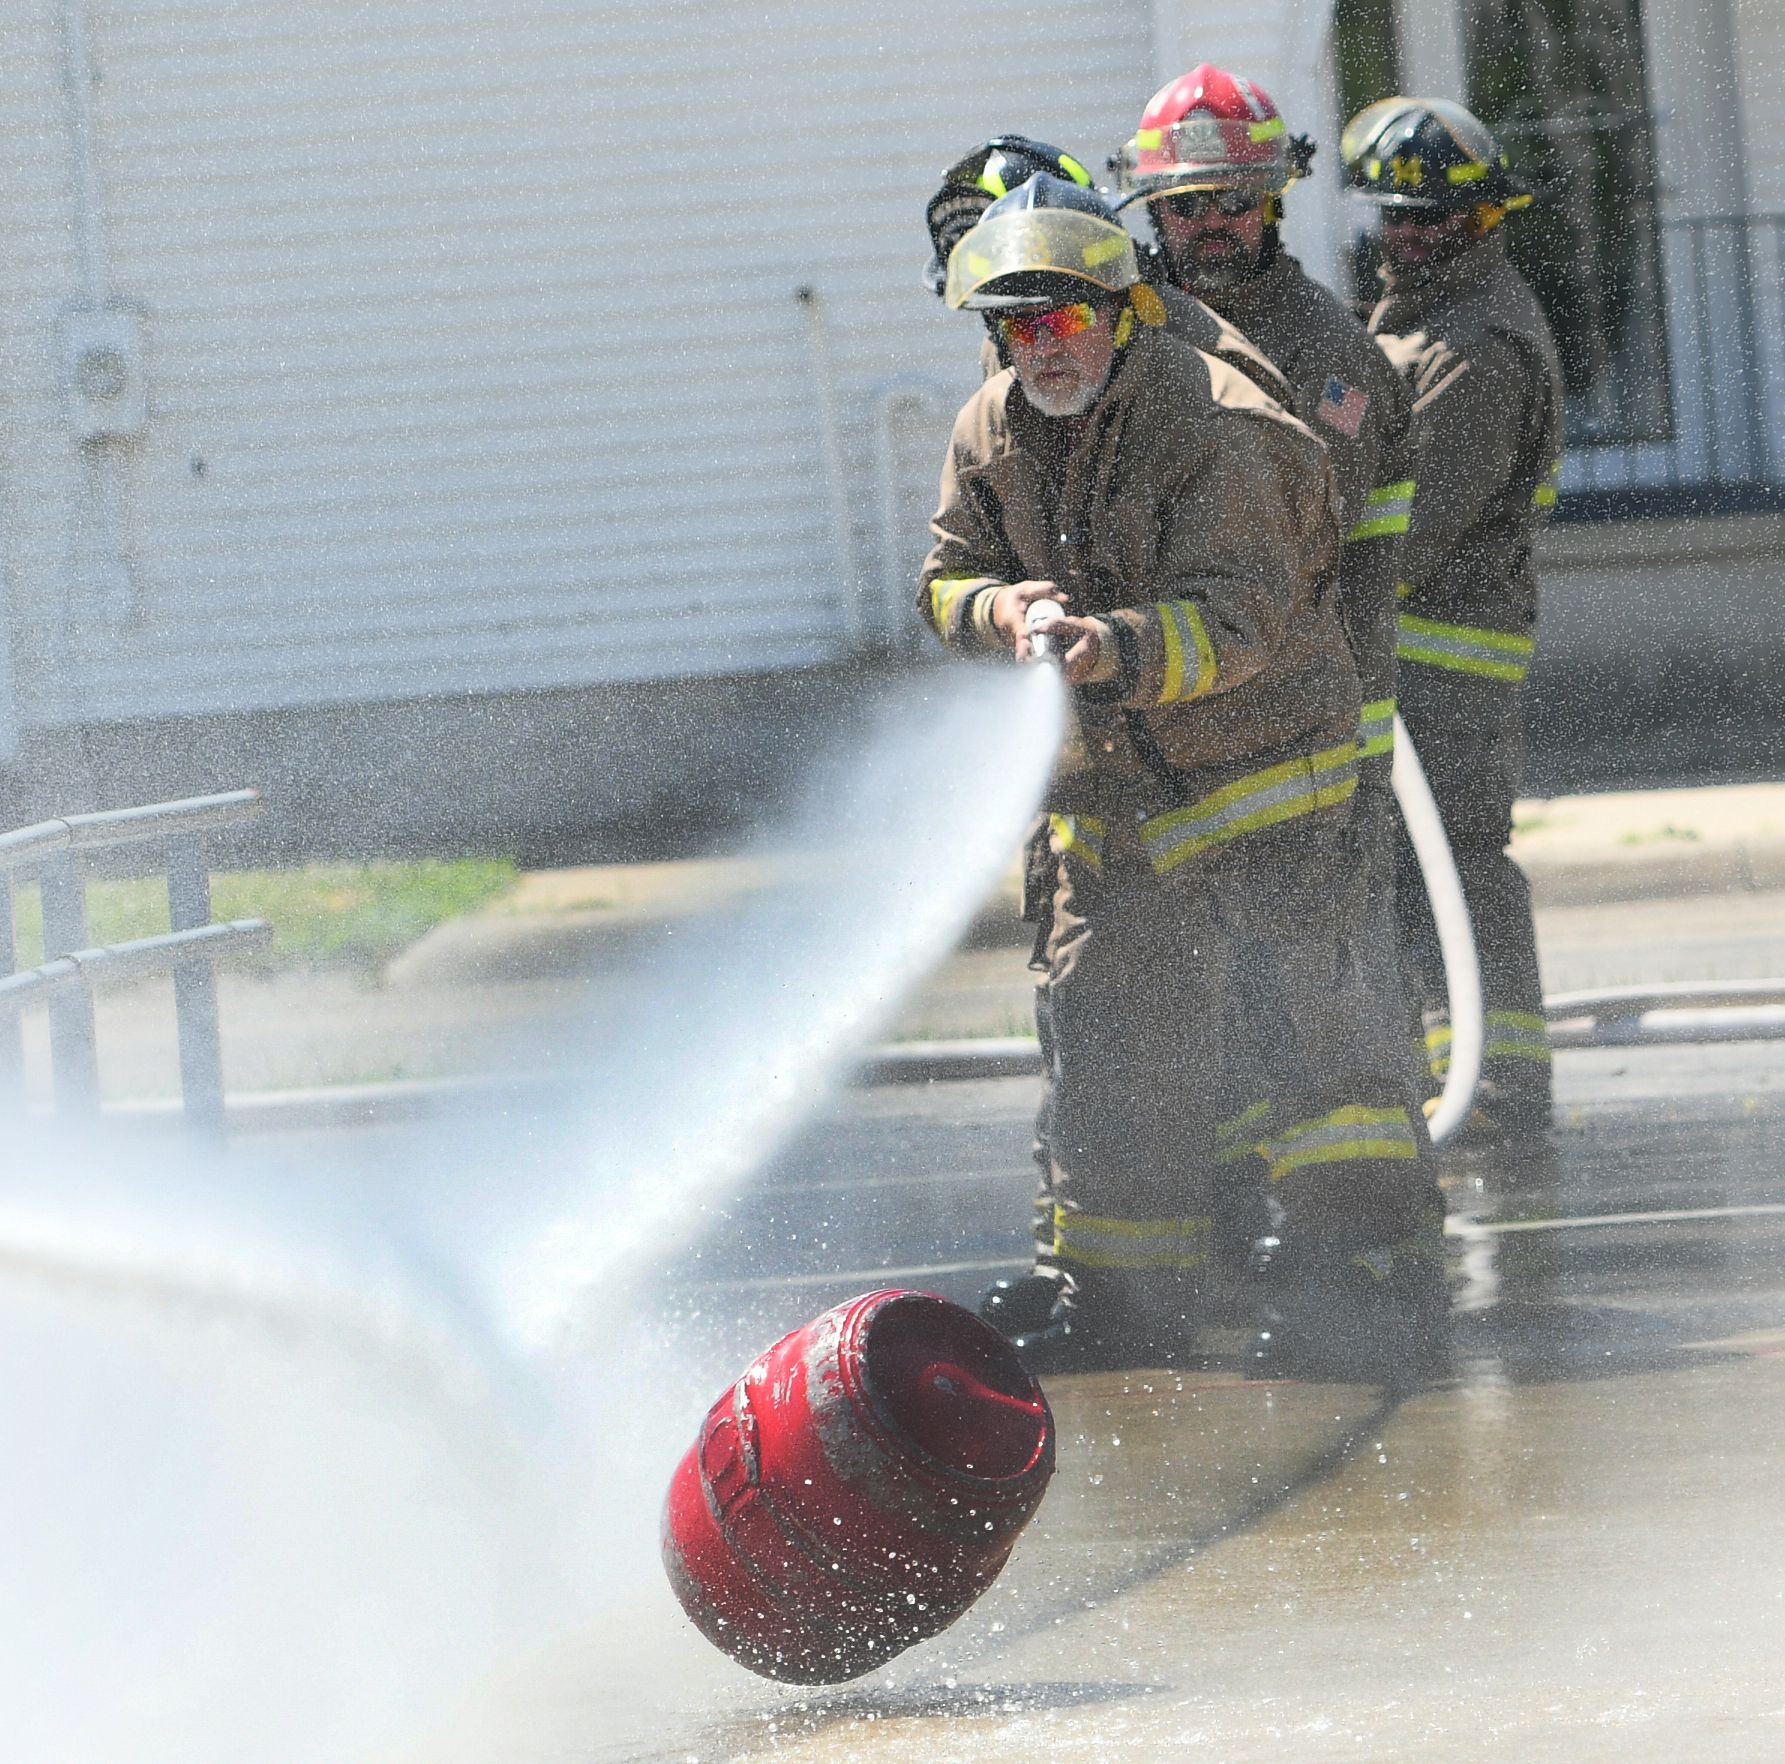 Hooppole firefighters Bill Hartman, Terry Sommers, Sheldon Miller, and Brad Rosenow compete Saturday.